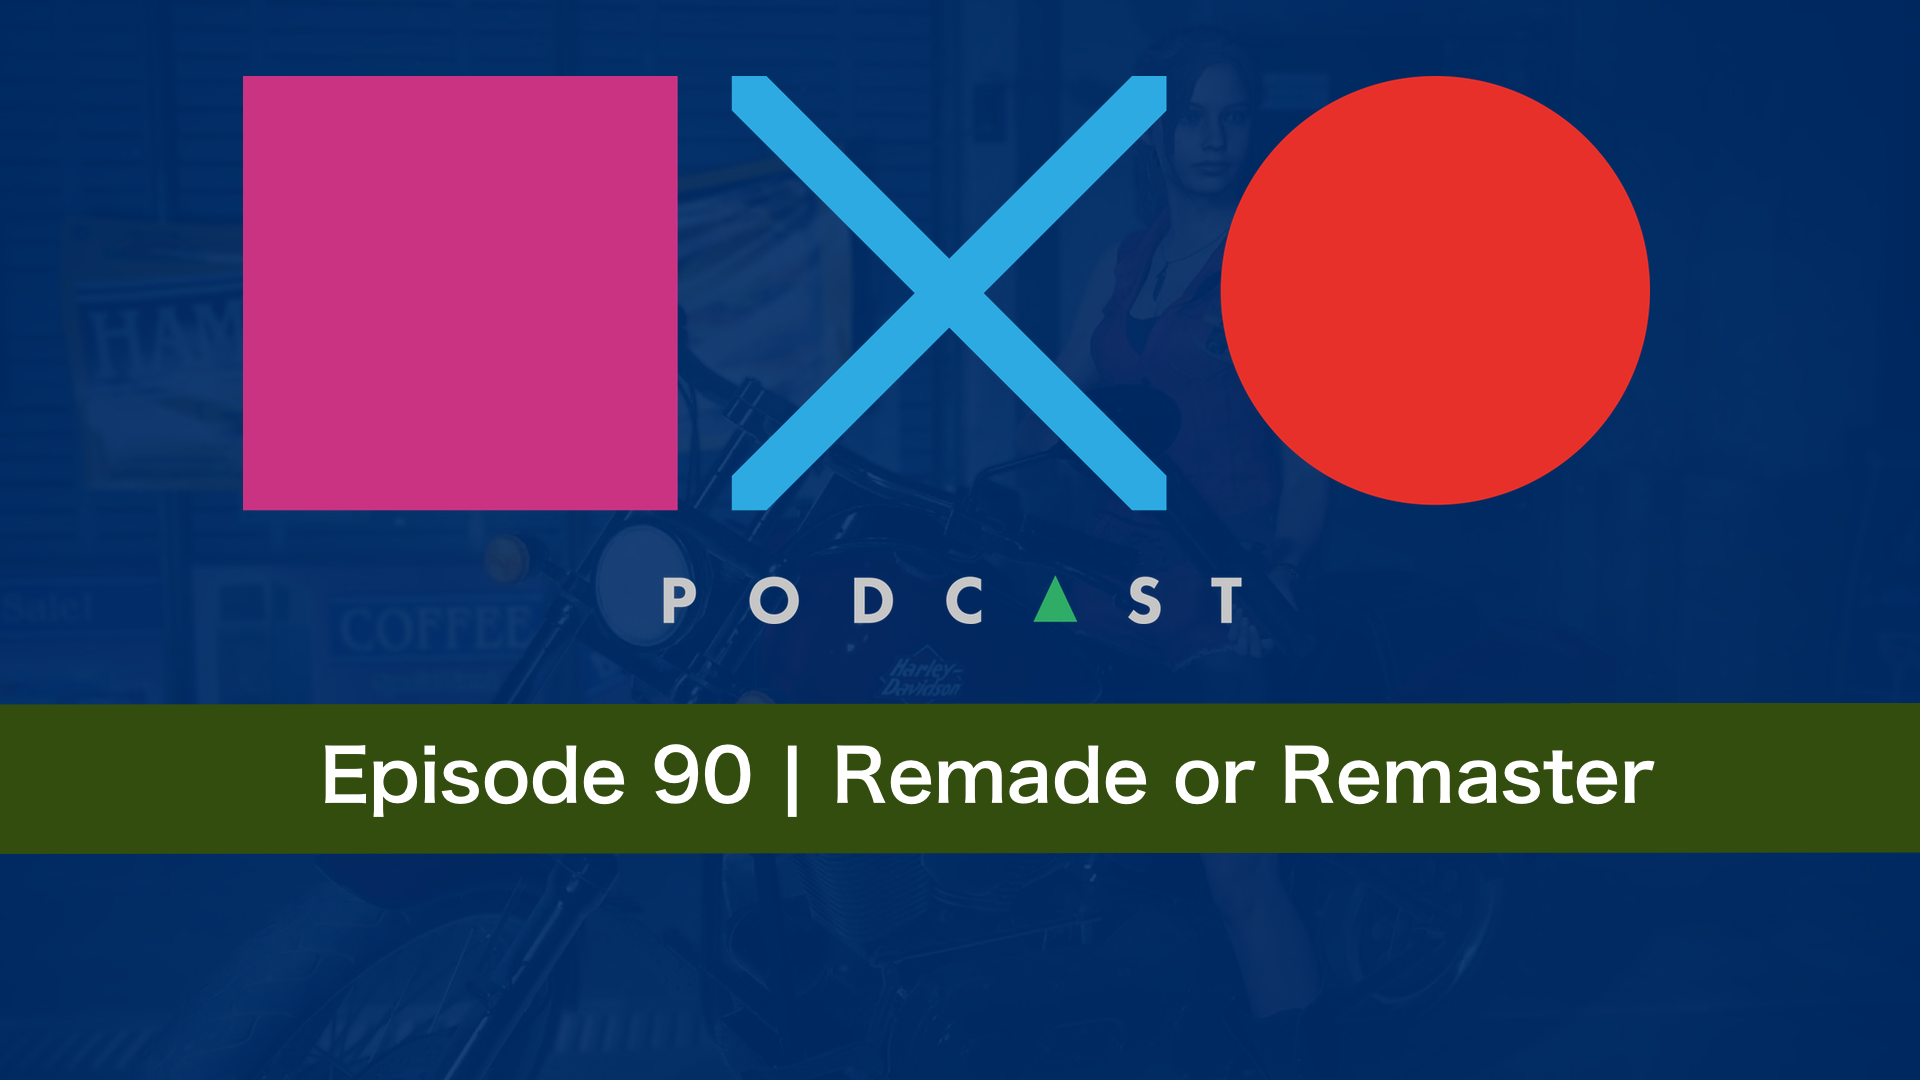 SquareXO | PlayStation Podcast | Episode 90 – Remake or Remaster